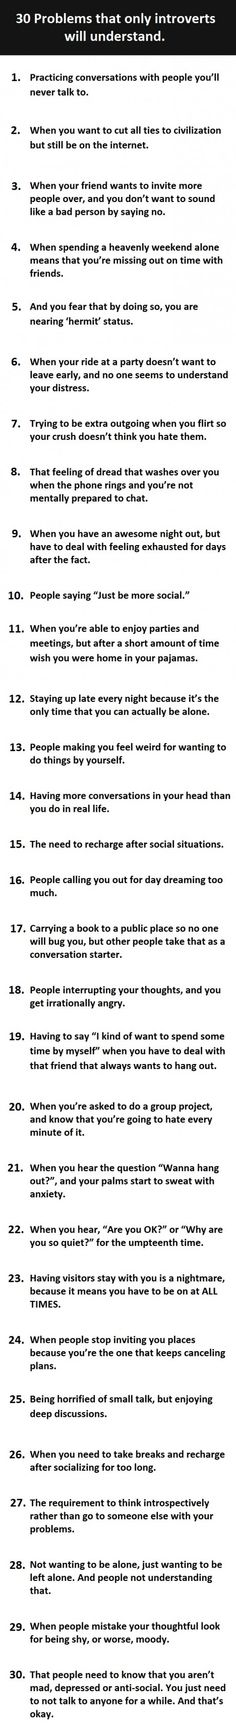 Problems only introverts will understand